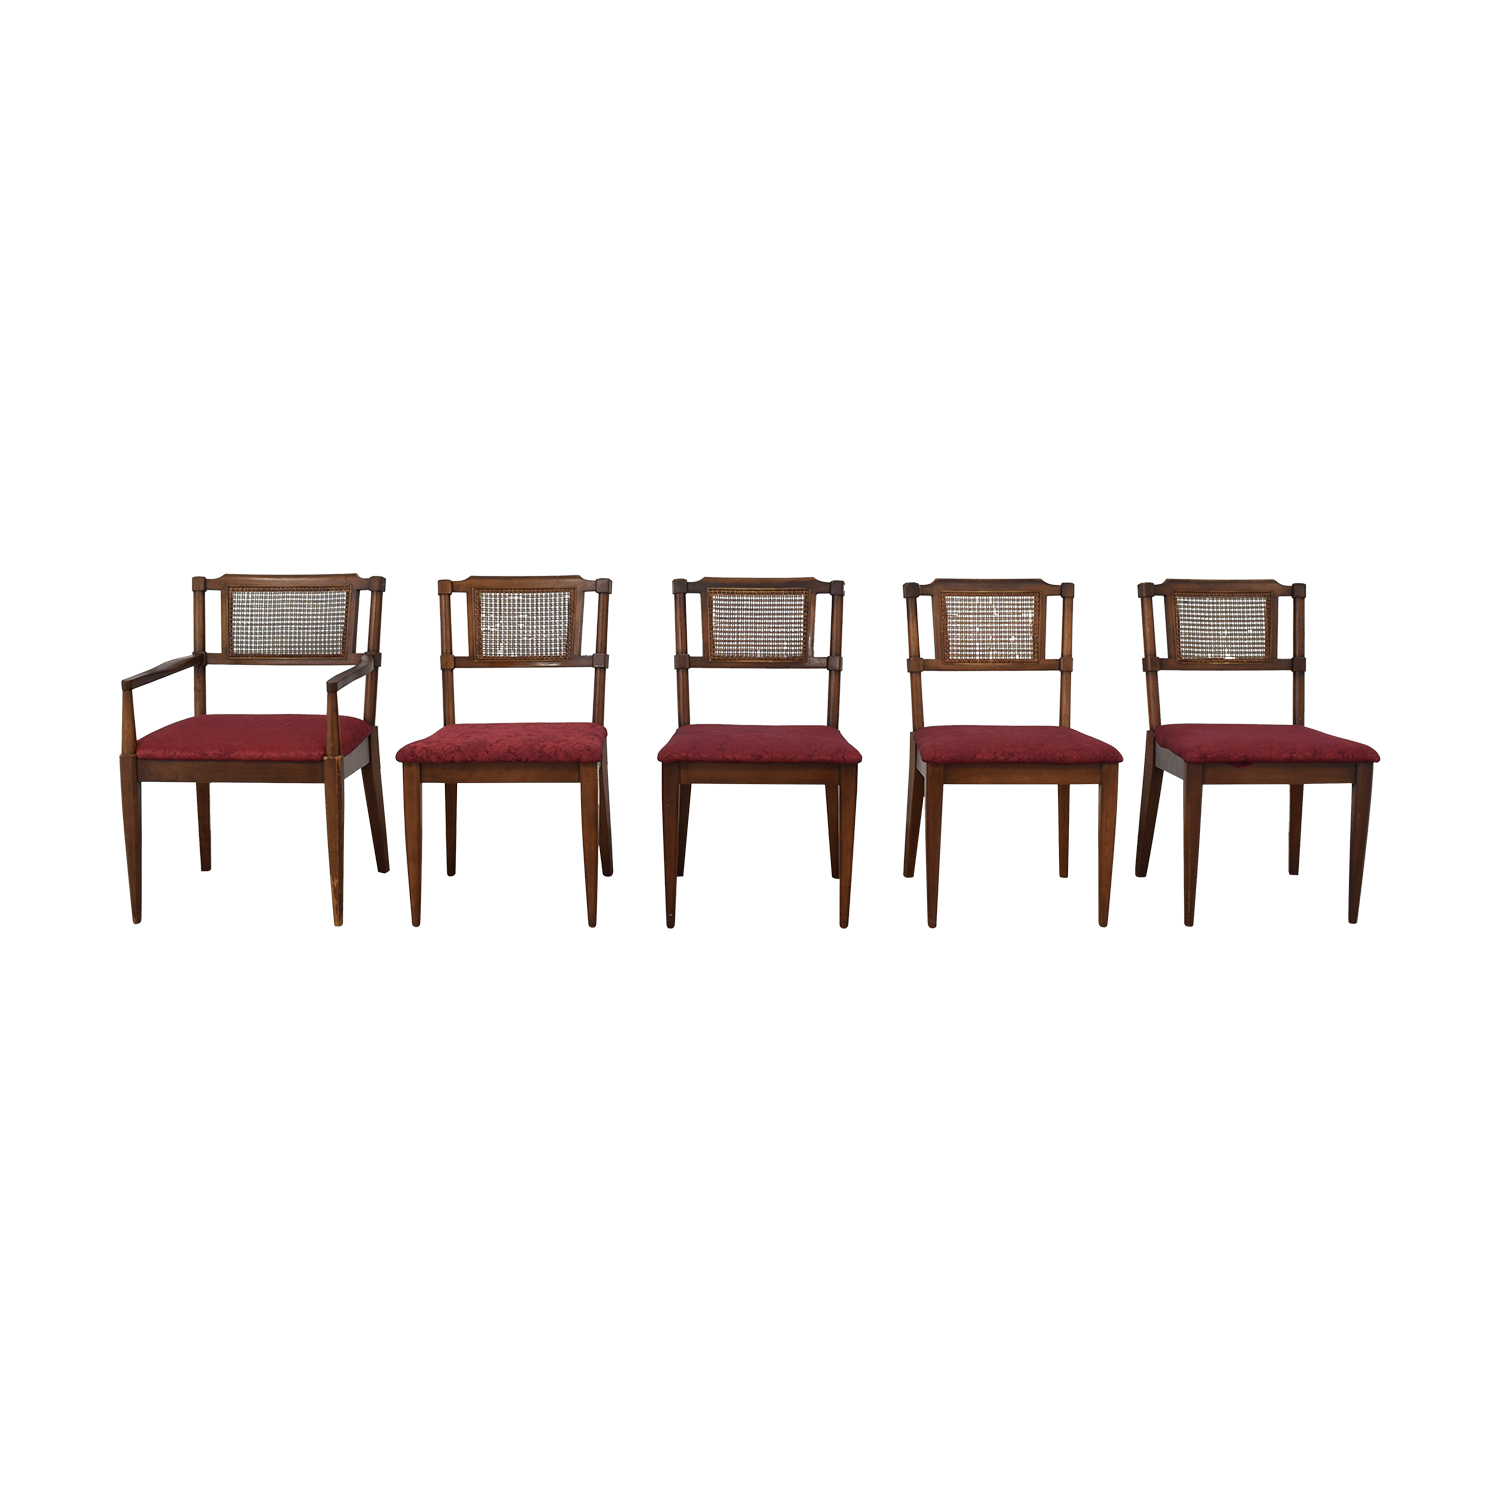 R & E Gordon Furniture Co. R & E Gordon Furniture Co. Dining Chairs Dining Chairs